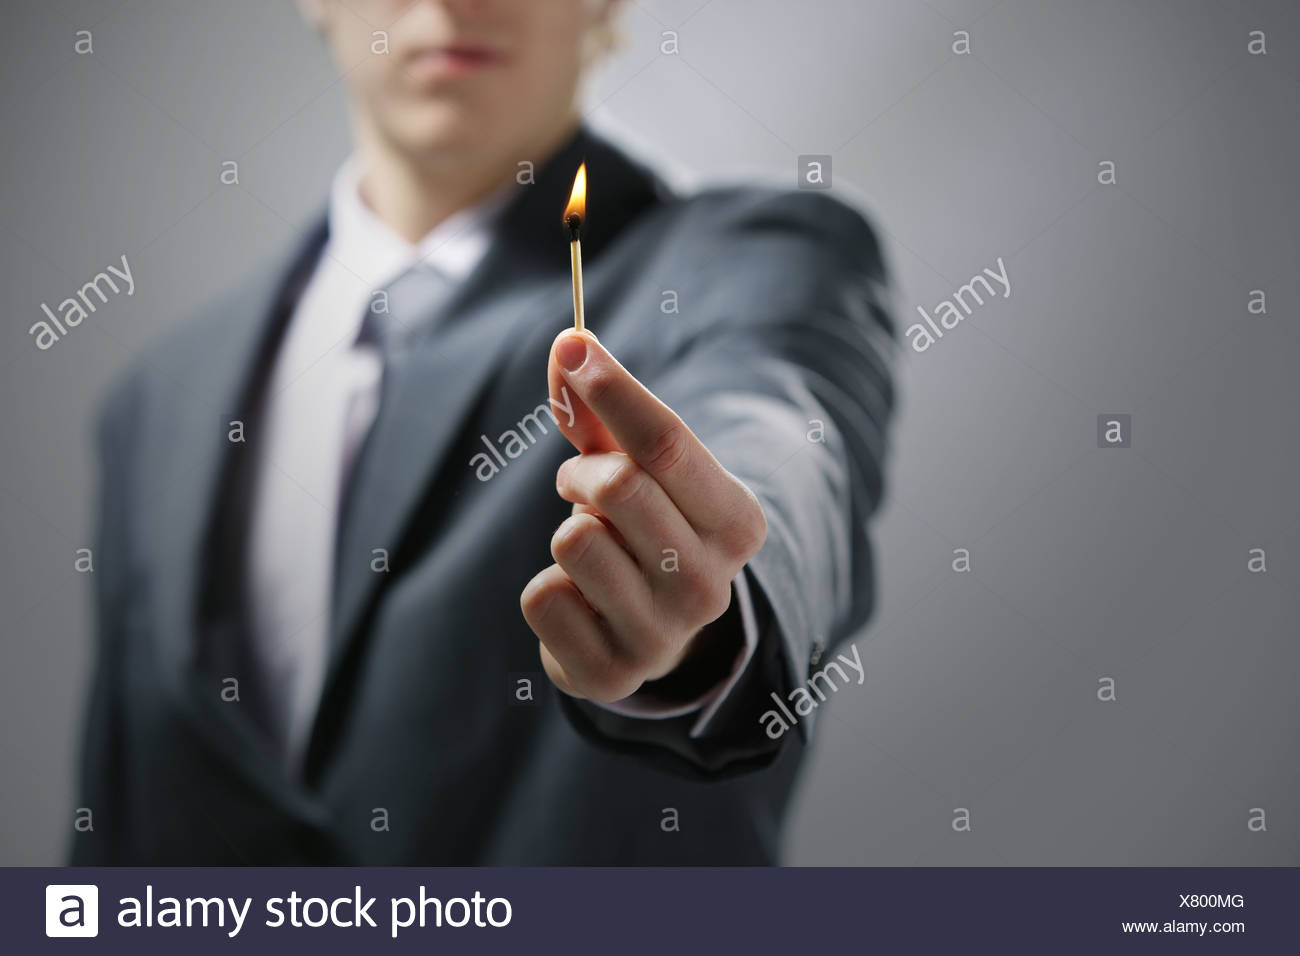 Business man hand holding a burning match - Stock Image